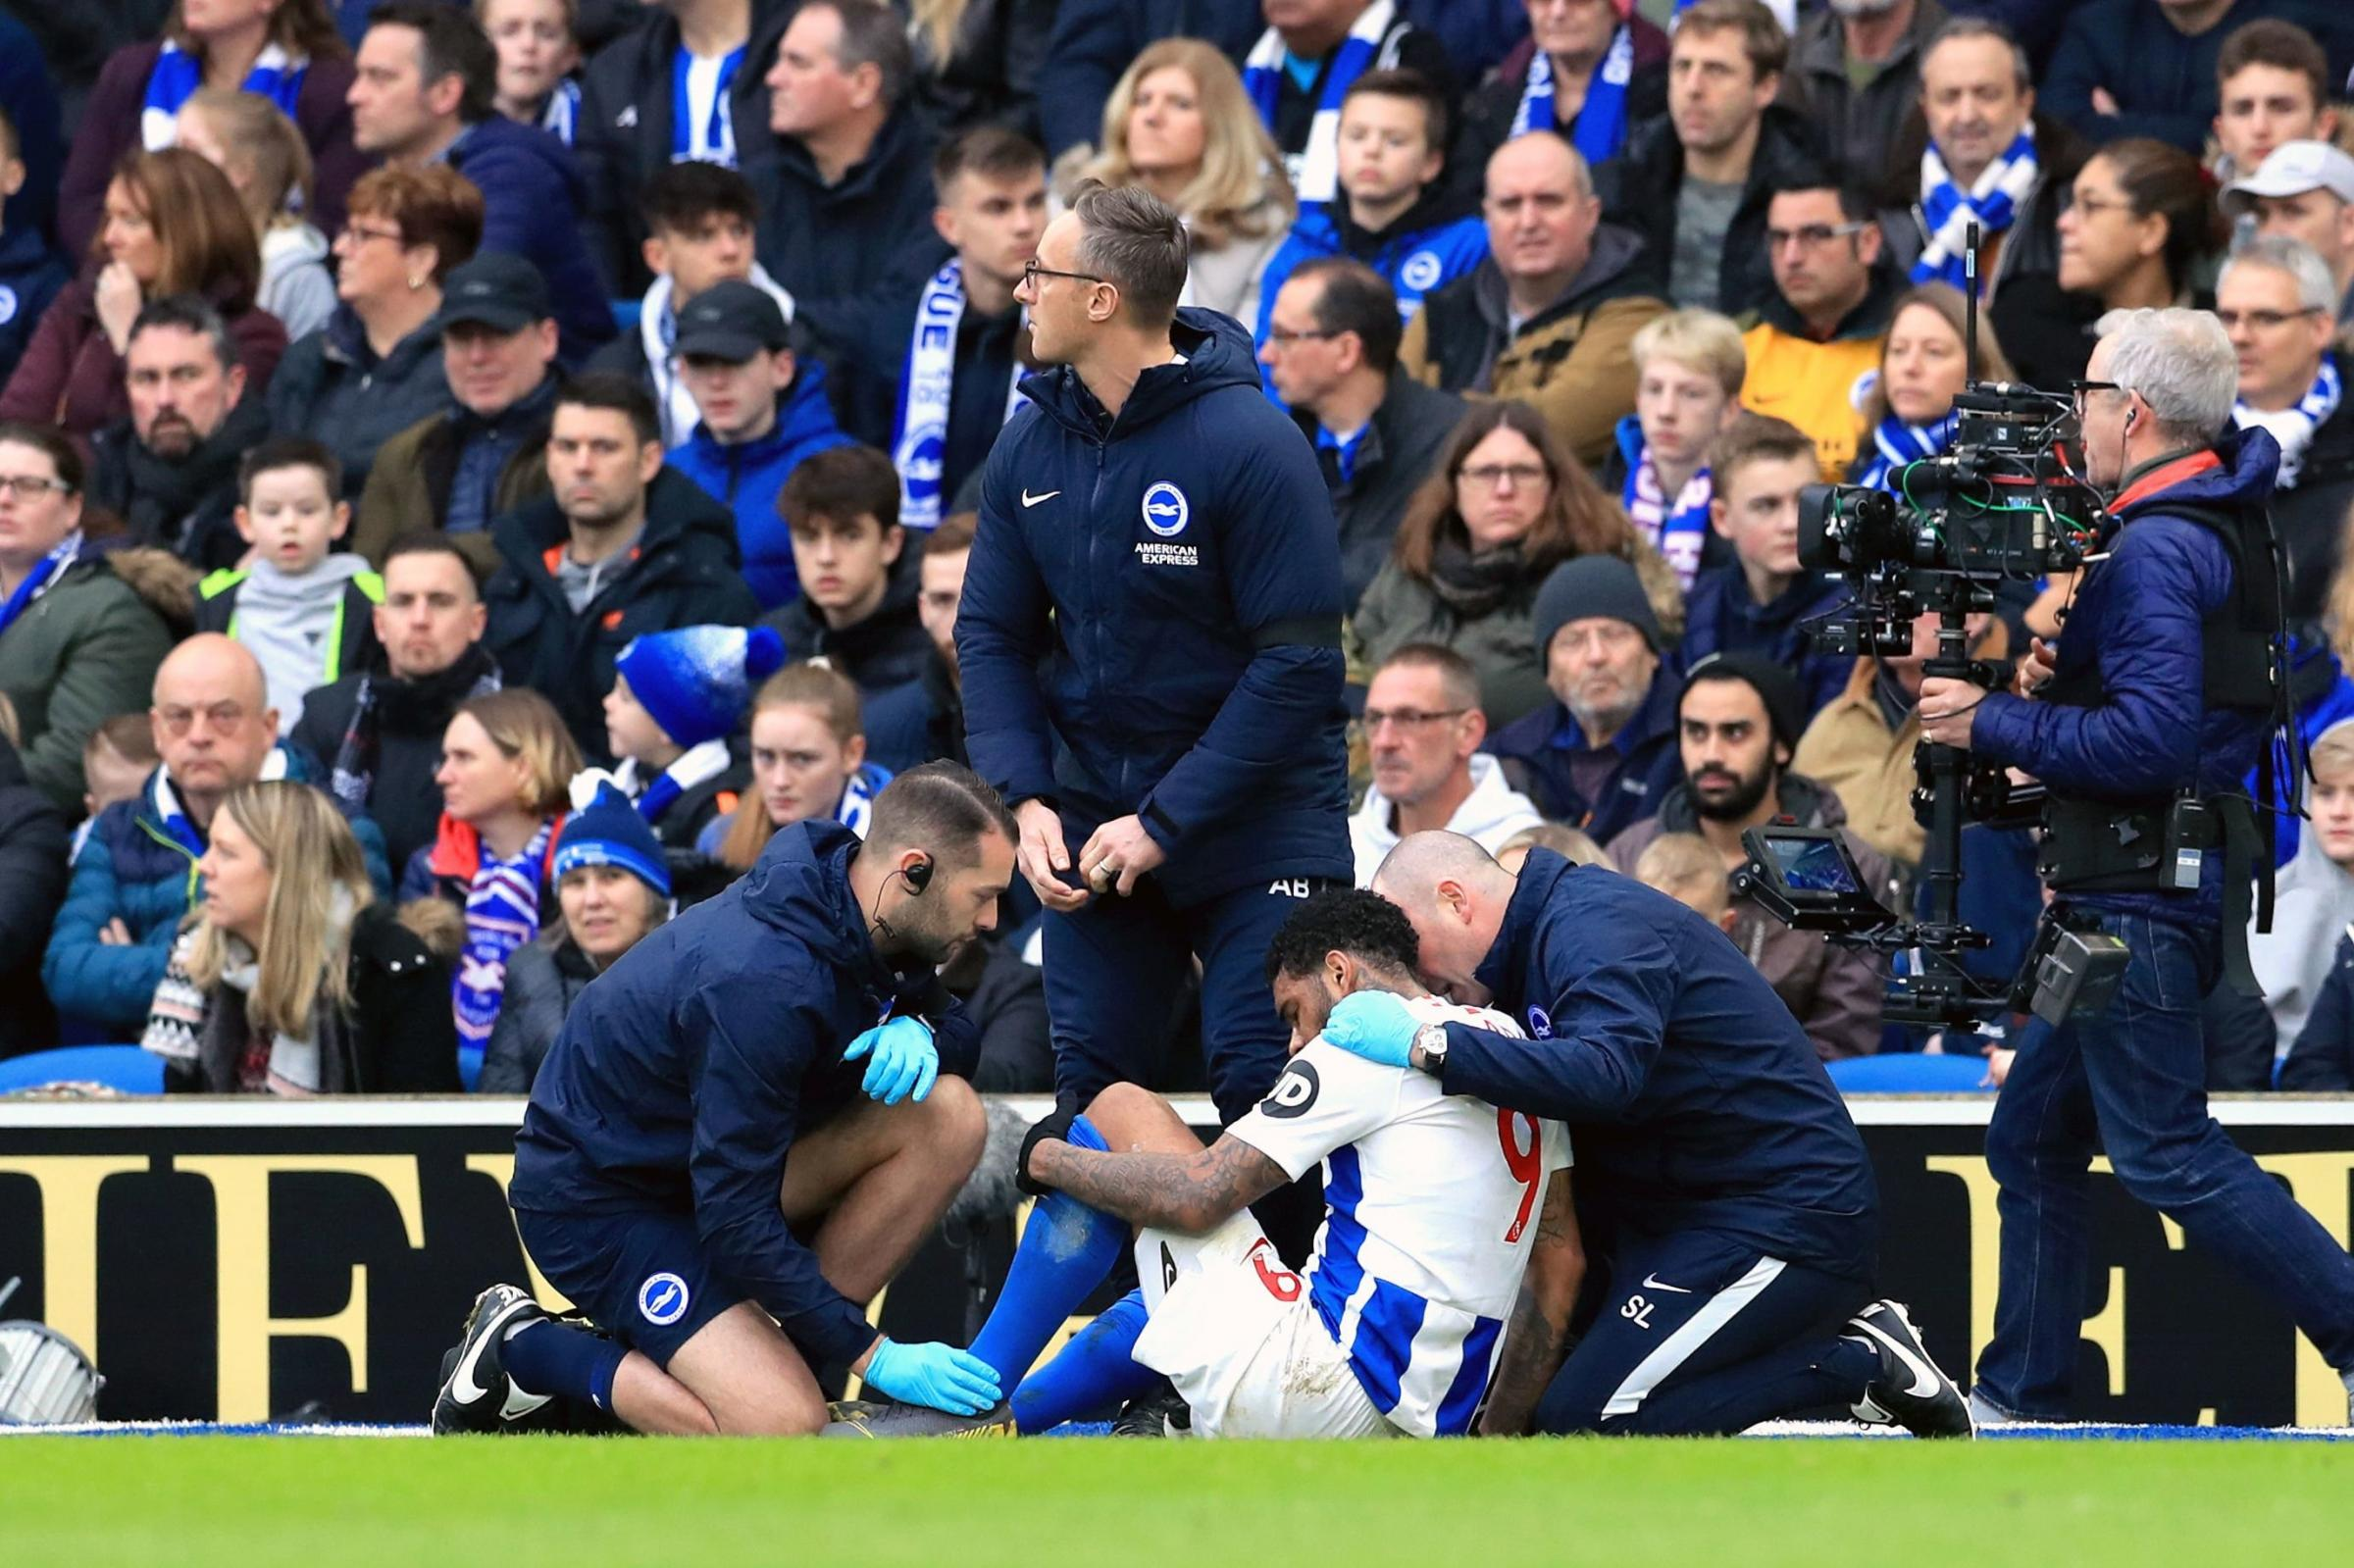 Cup carnage as injury and illness hit Albion